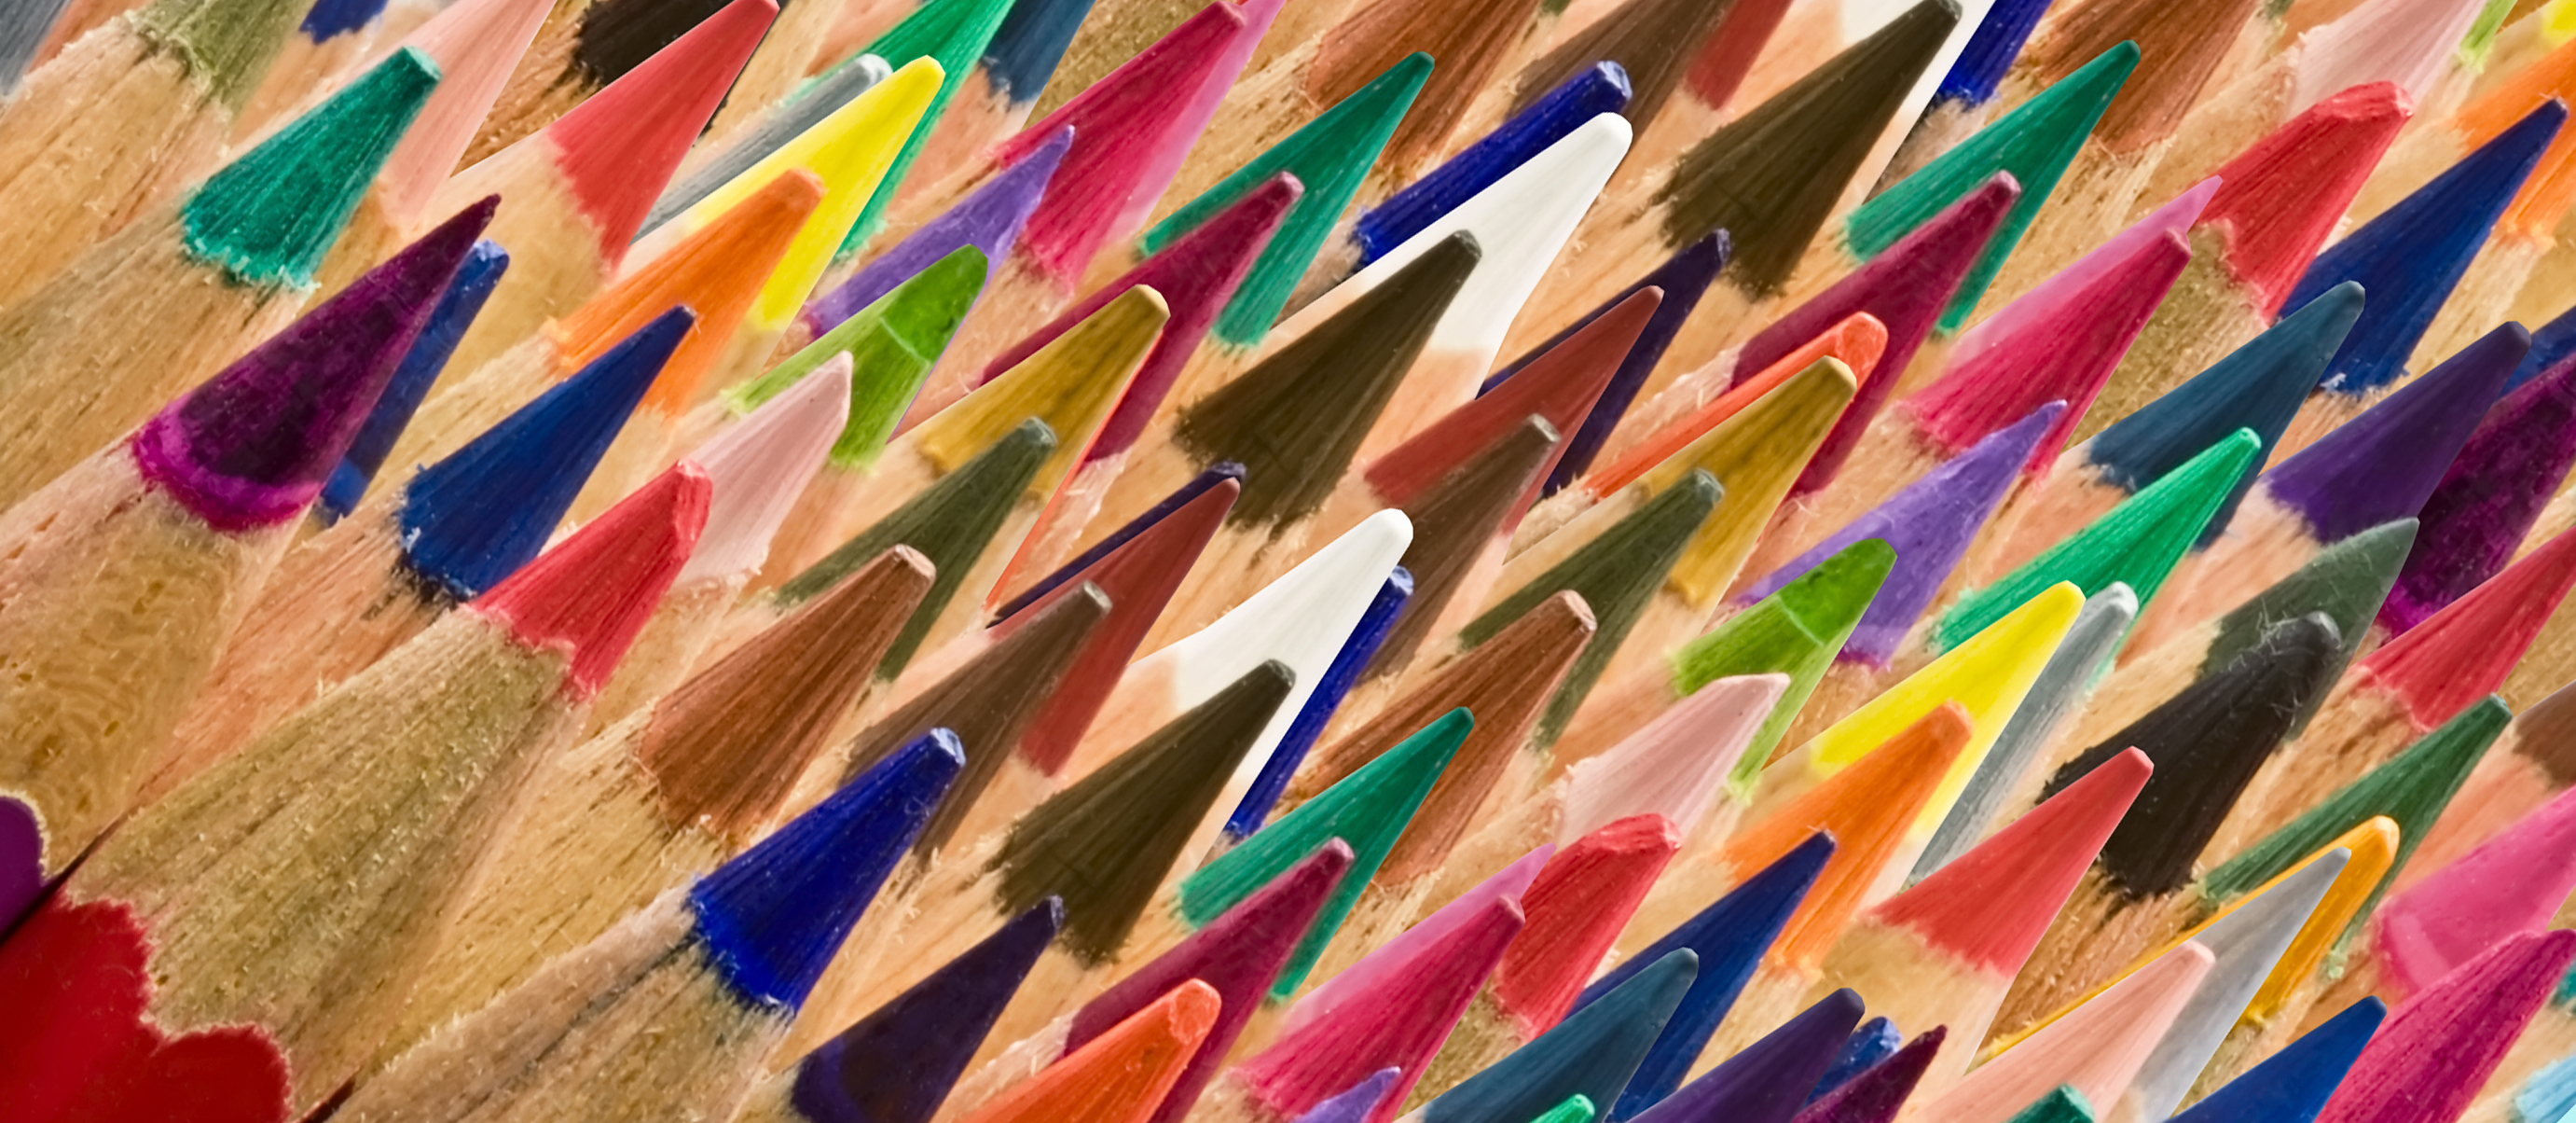 Pencils_at45_shutterstock_96665545